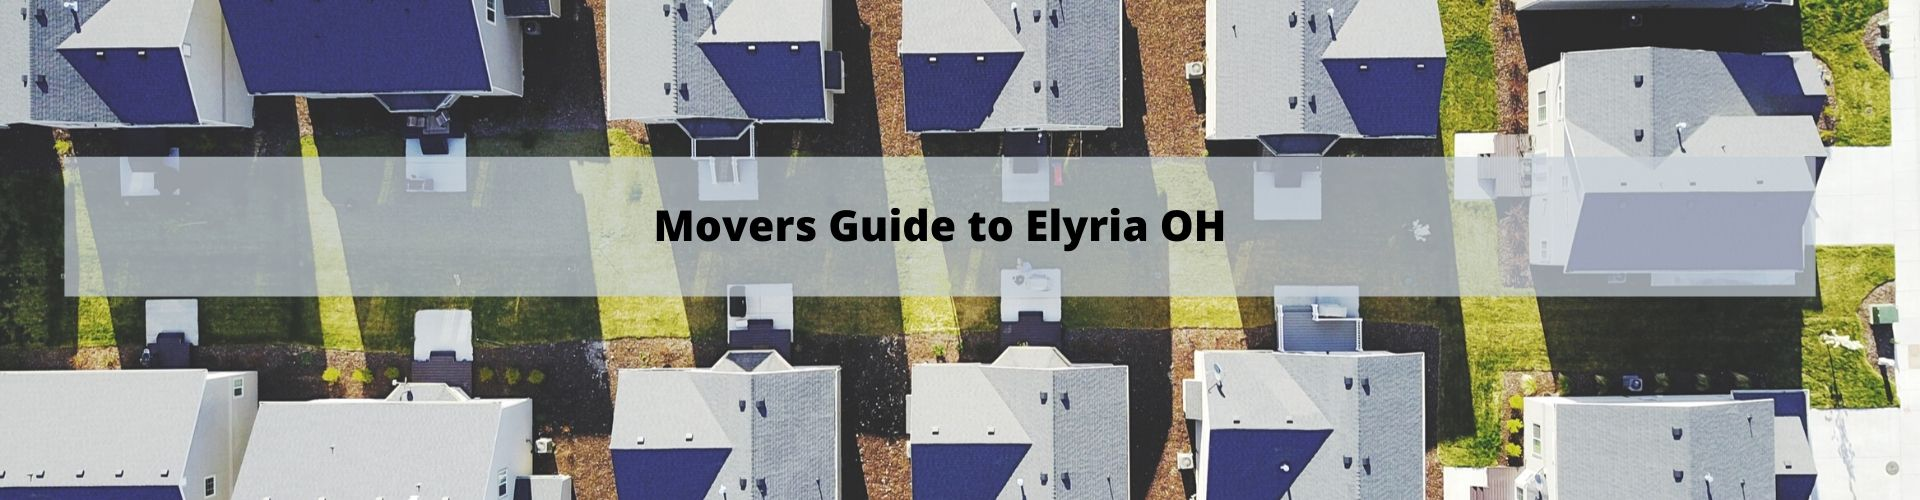 Mover's Guide to Elyria OH